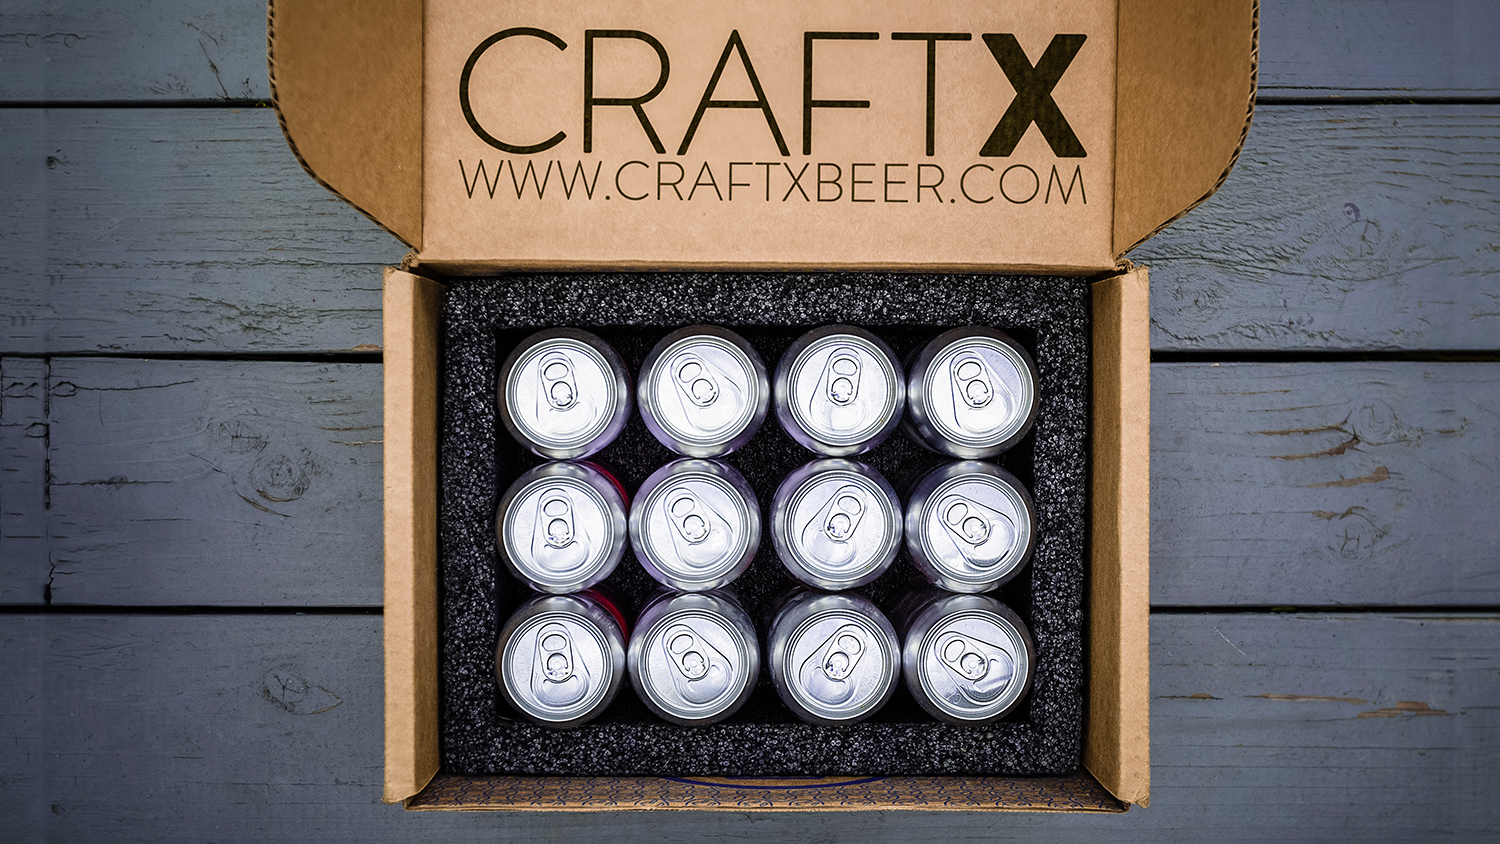 craftx beer subscription craft beer